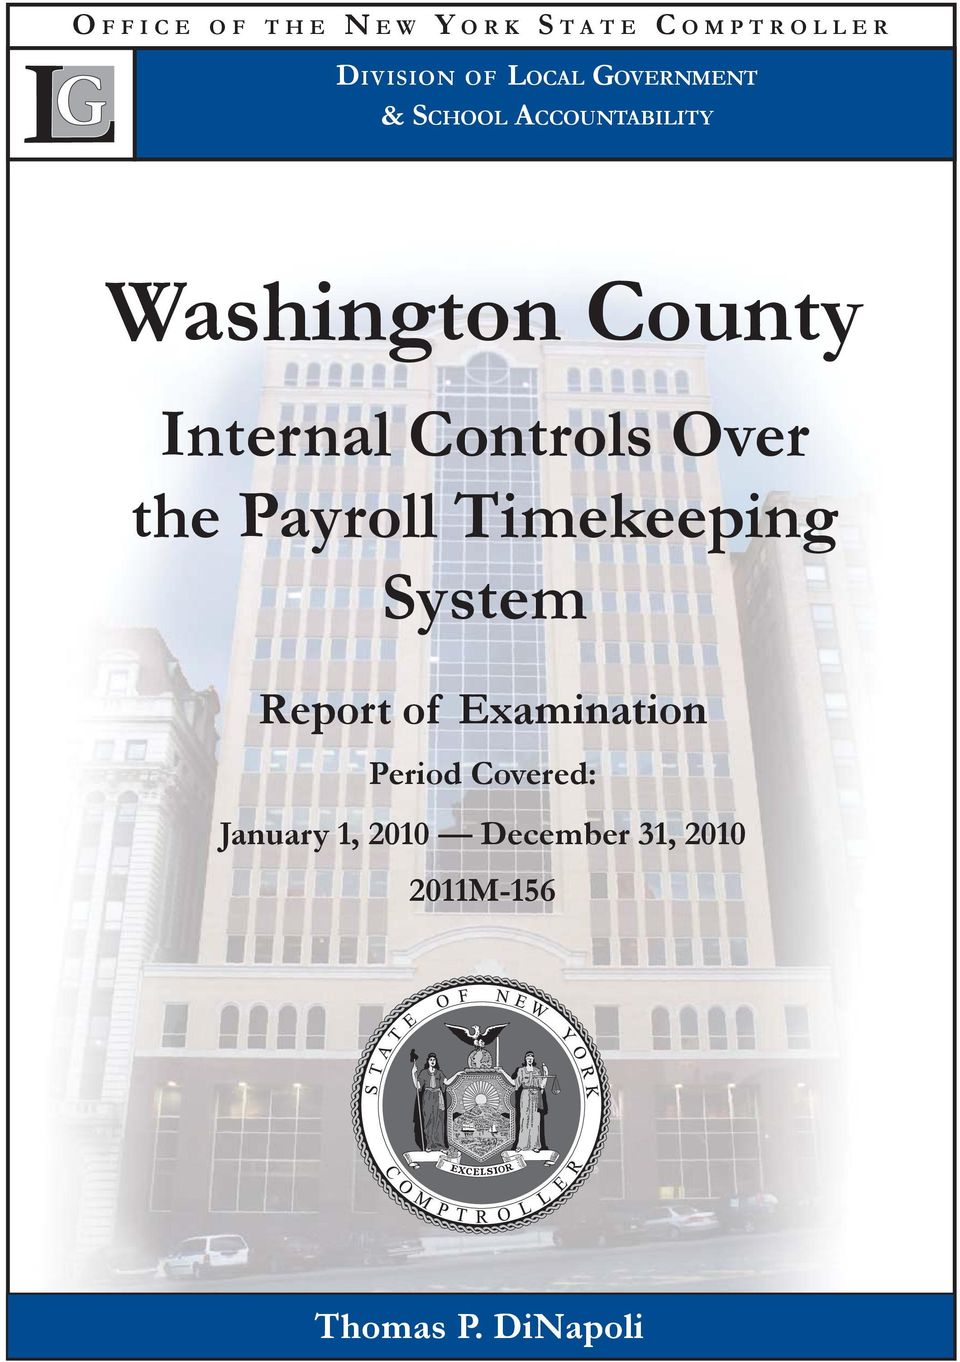 Controls Over the Payroll Timekeeping System Report of Examination